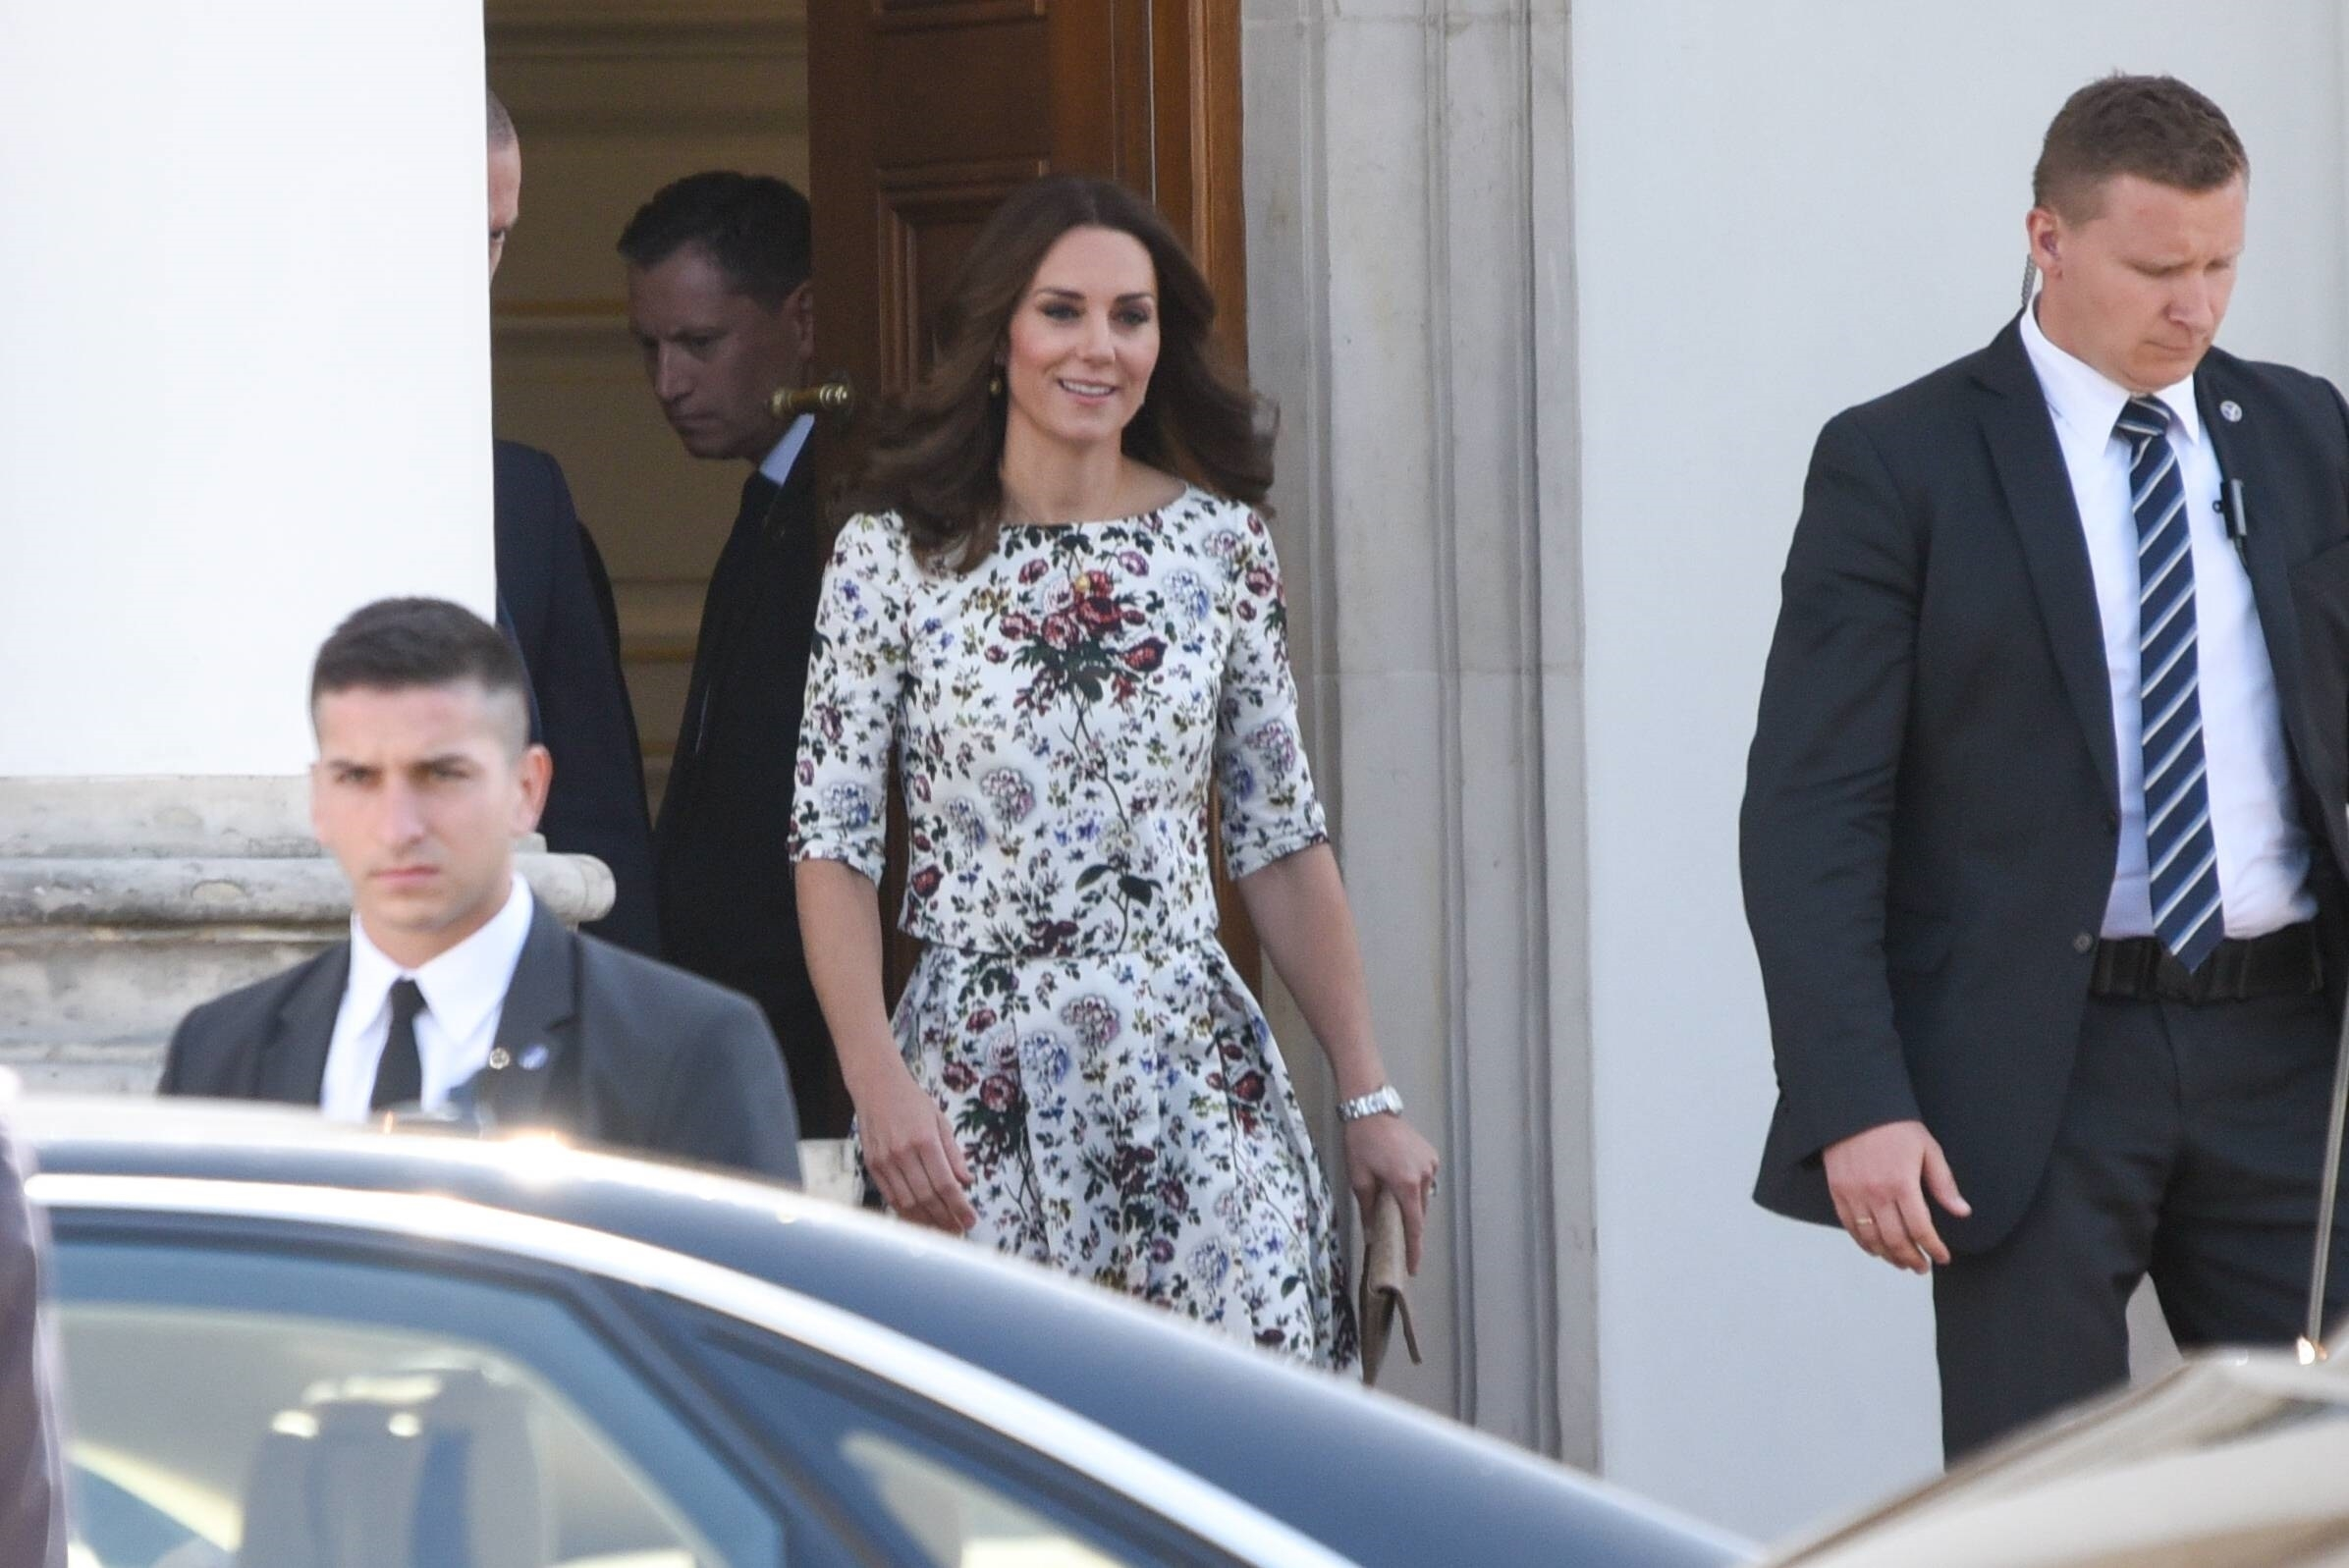 Kate Middleton and Prince William attend an event in Poland